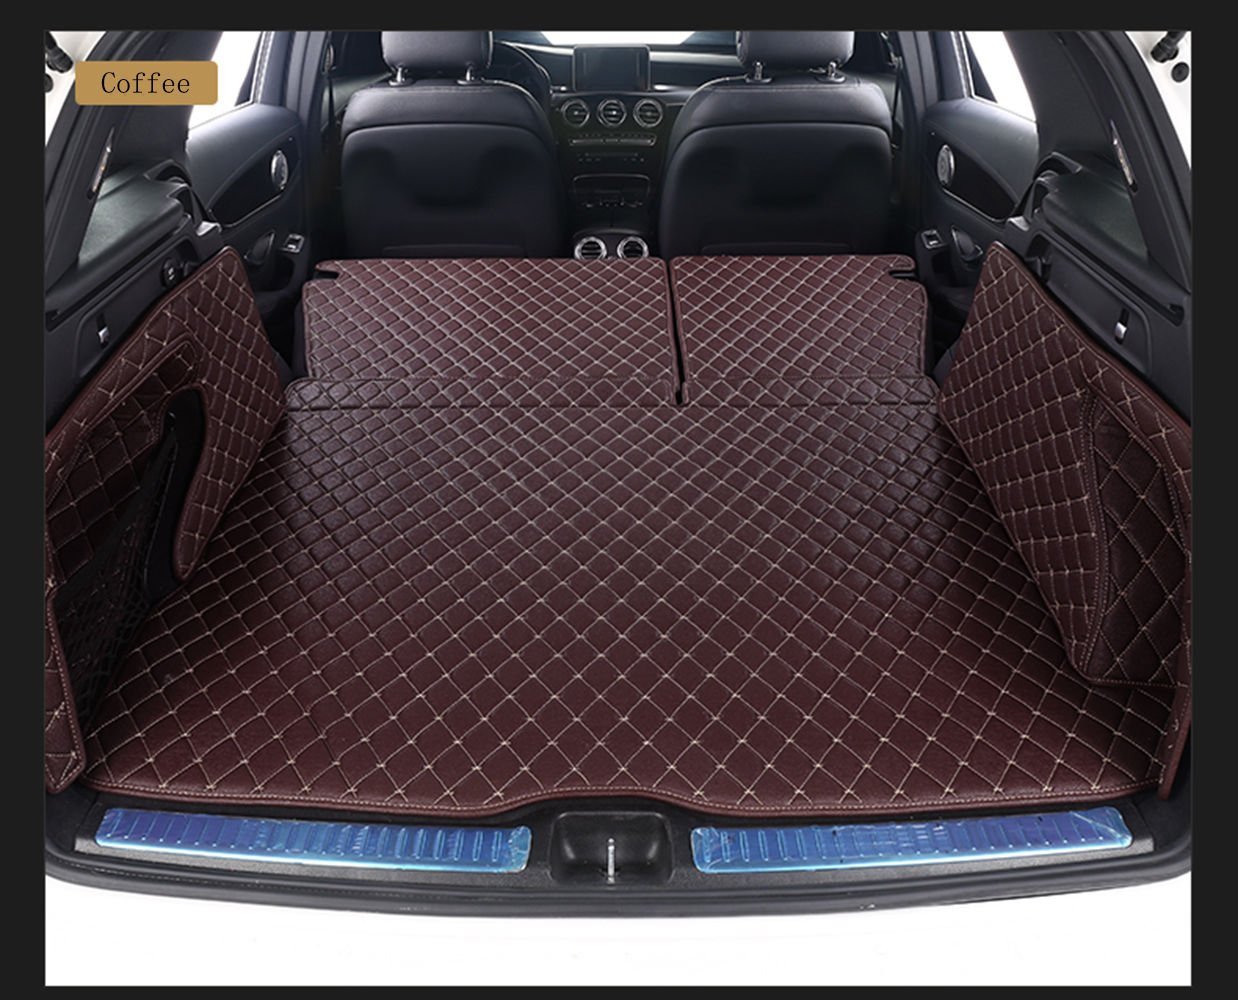 Worth-Mats 3D Full Coverage Waterproof Car Trunk Mat for Landrover Range Rover Sport 2013-2019-Coffee by Worth-Mats